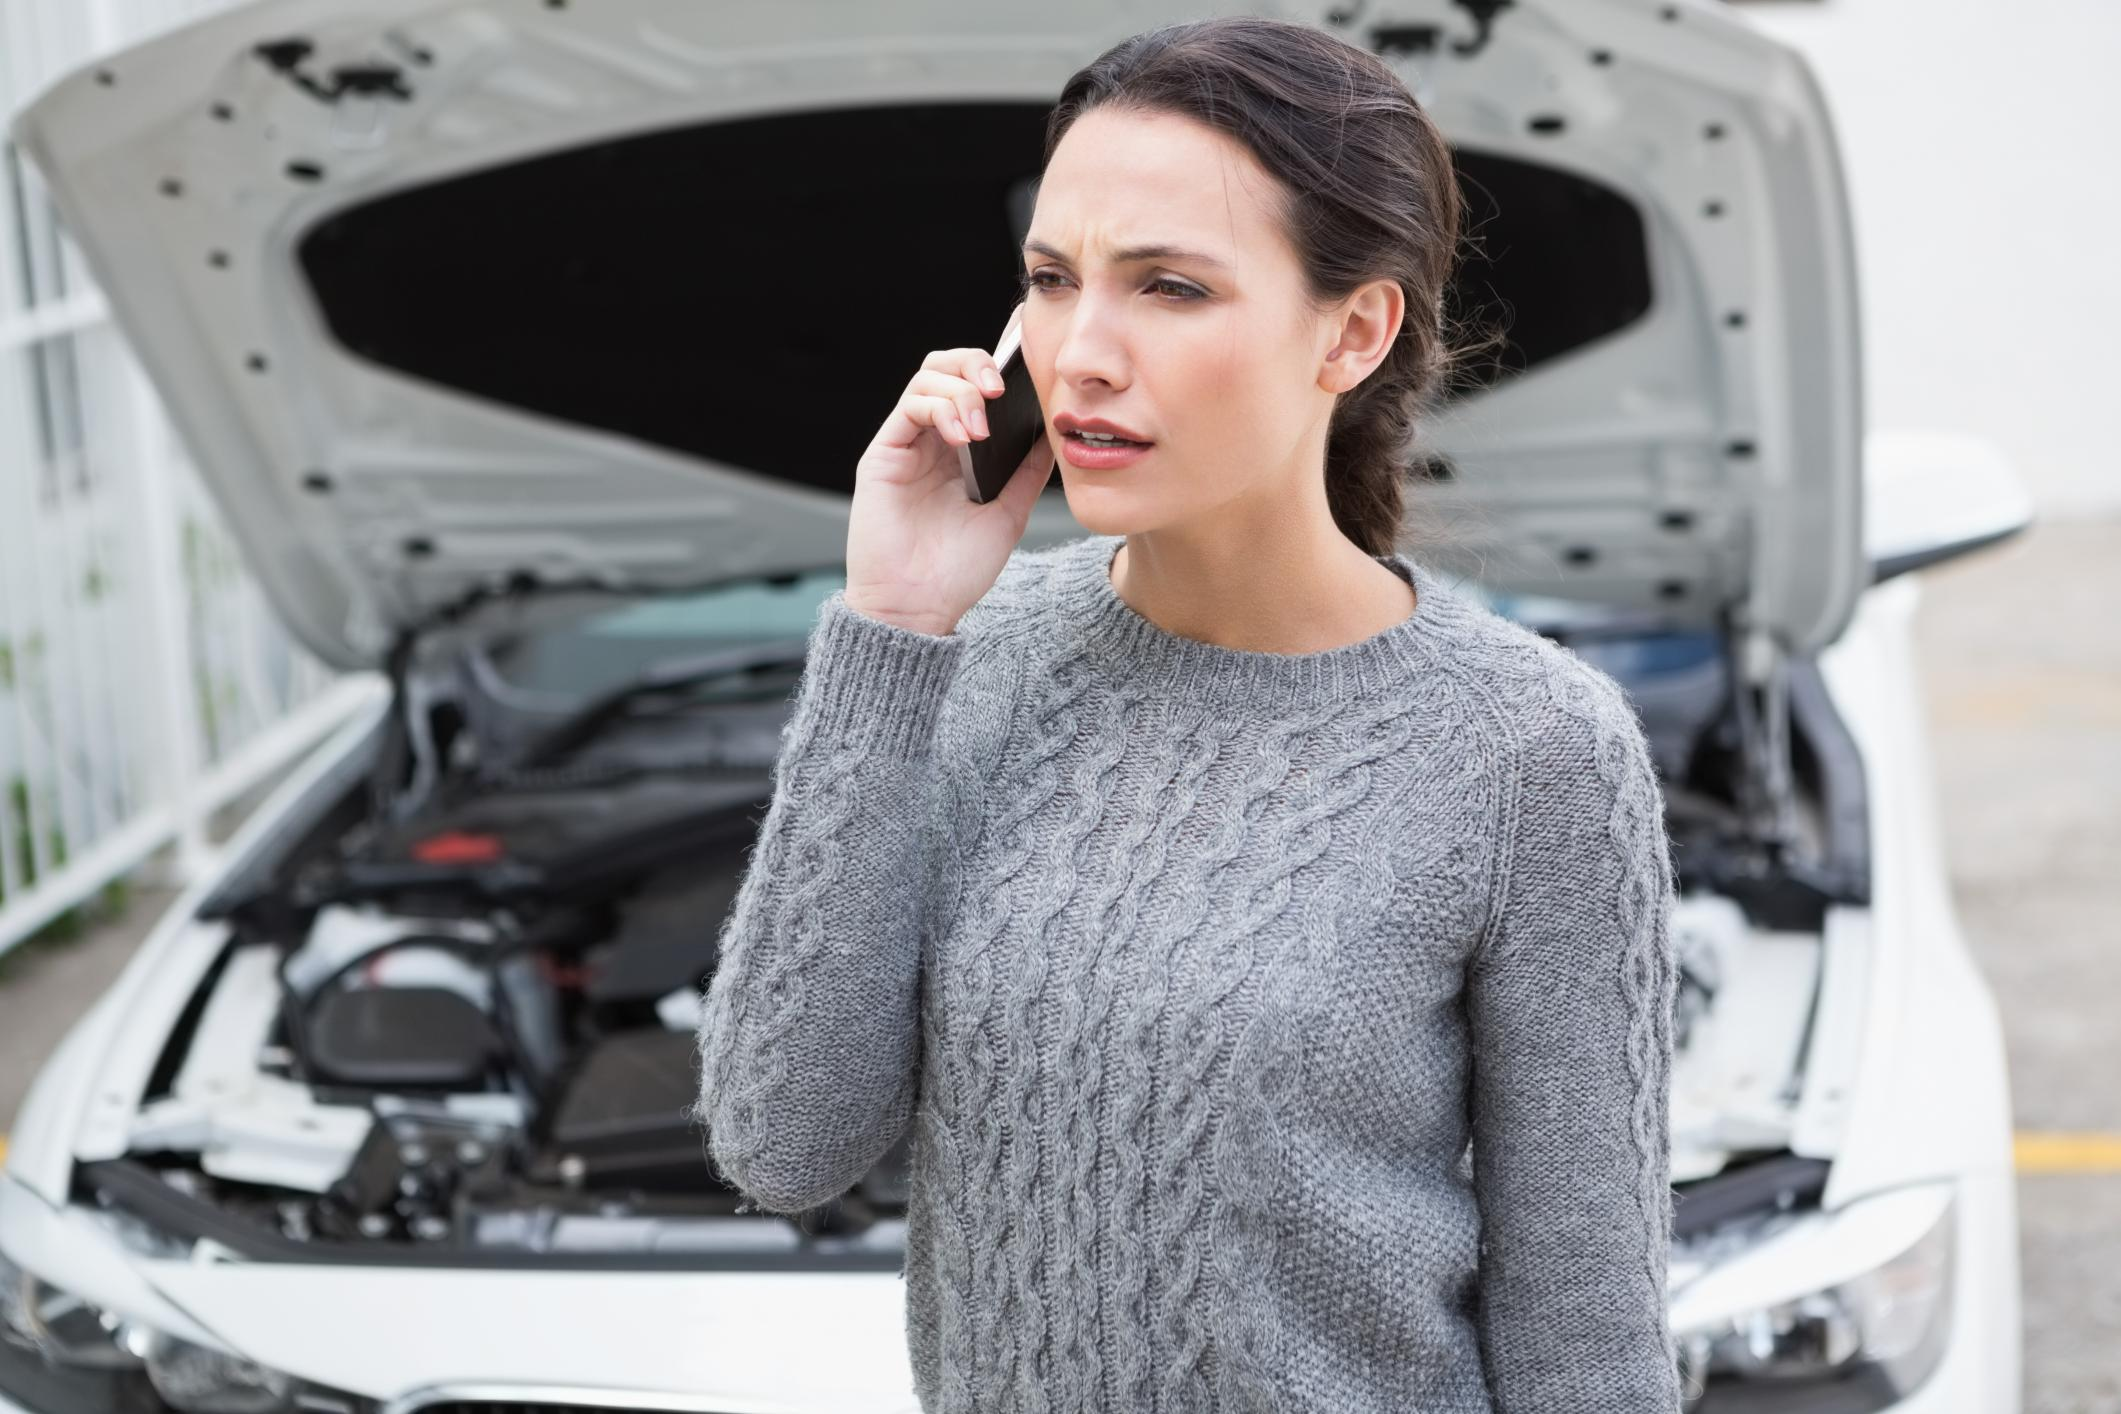 This is a picture of woman having a phone call.